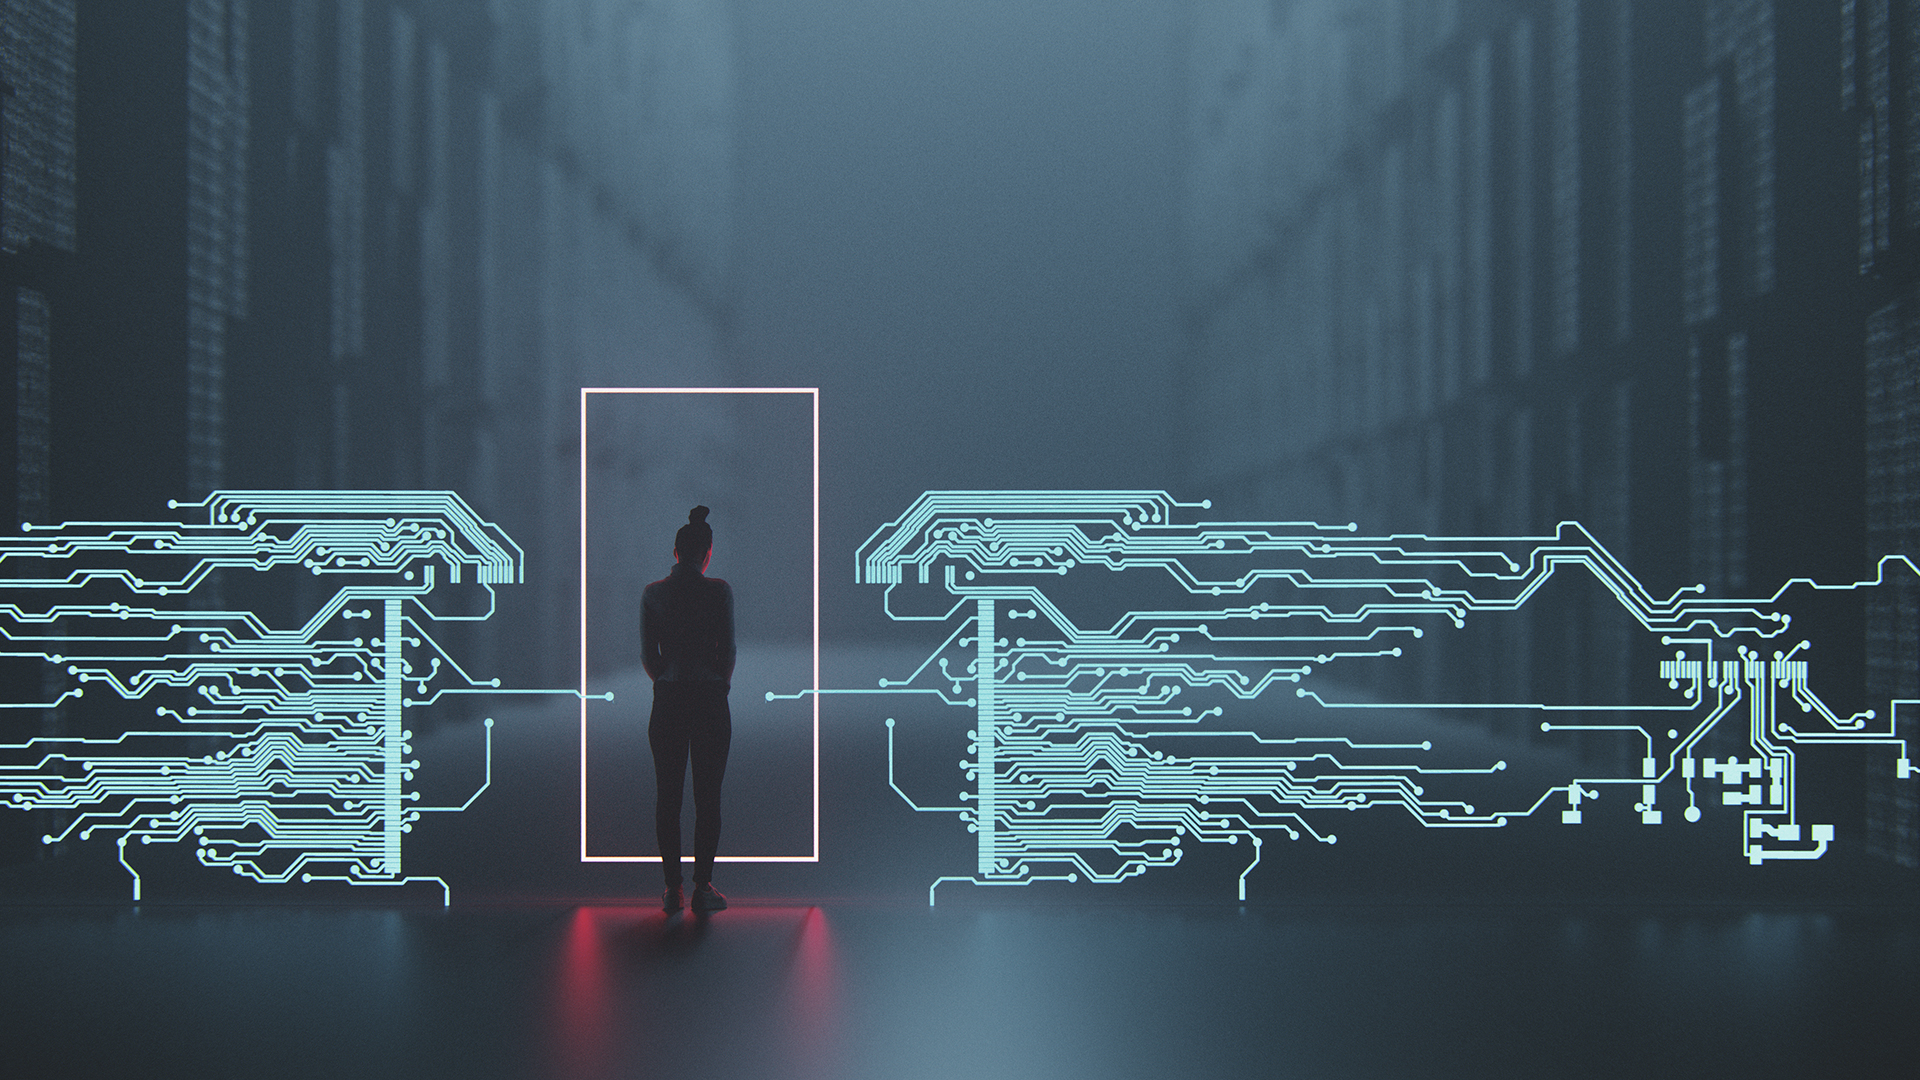 Understanding the Barriers that are Slowing Digital Transformation